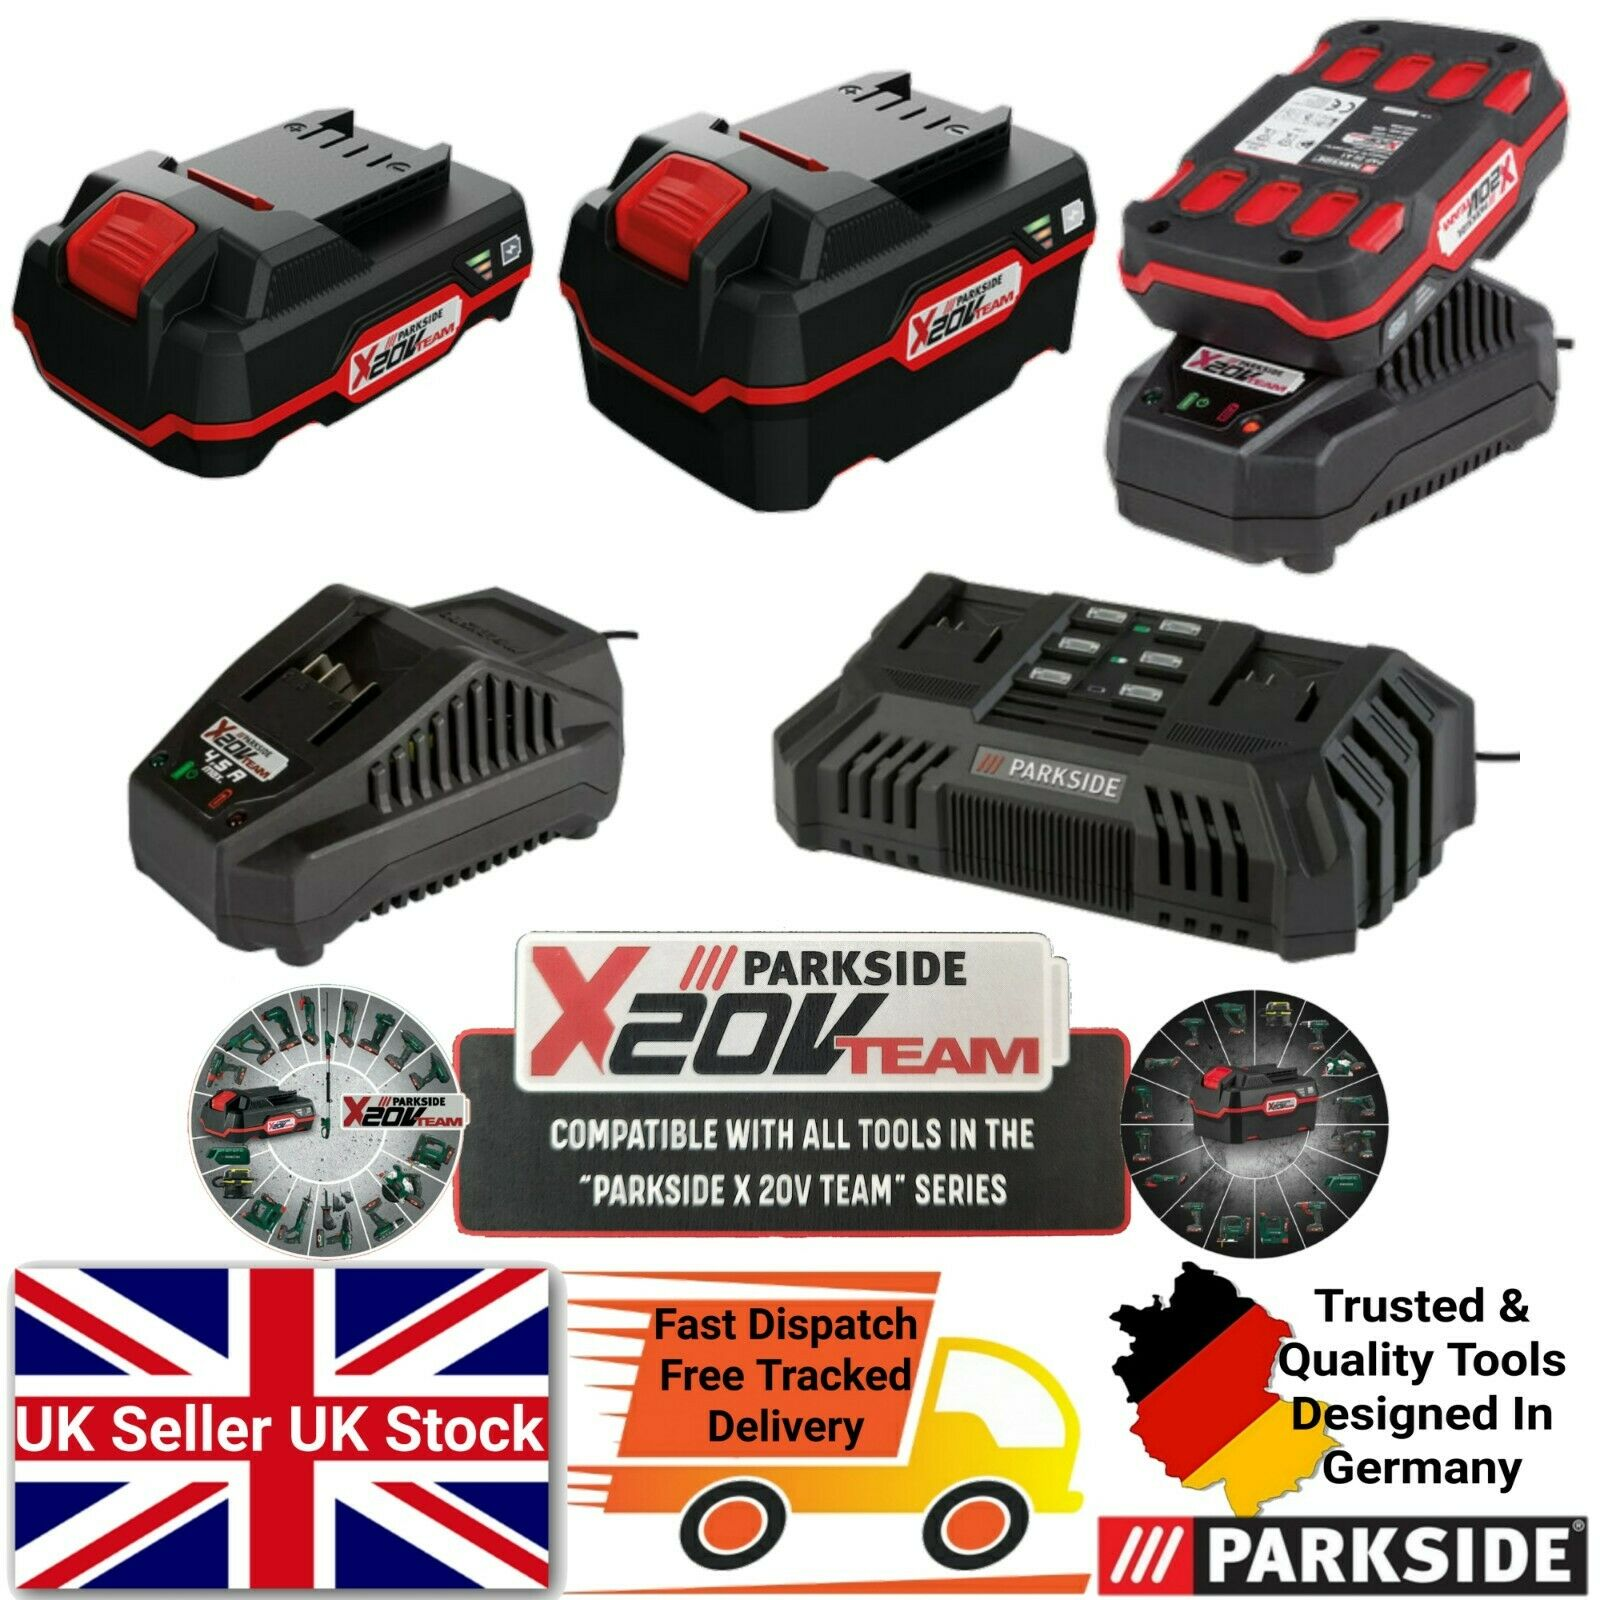 Parkside 20V 2Ah 4Ah Battery / Charger Fit All X20V Team Series Cordless Tool